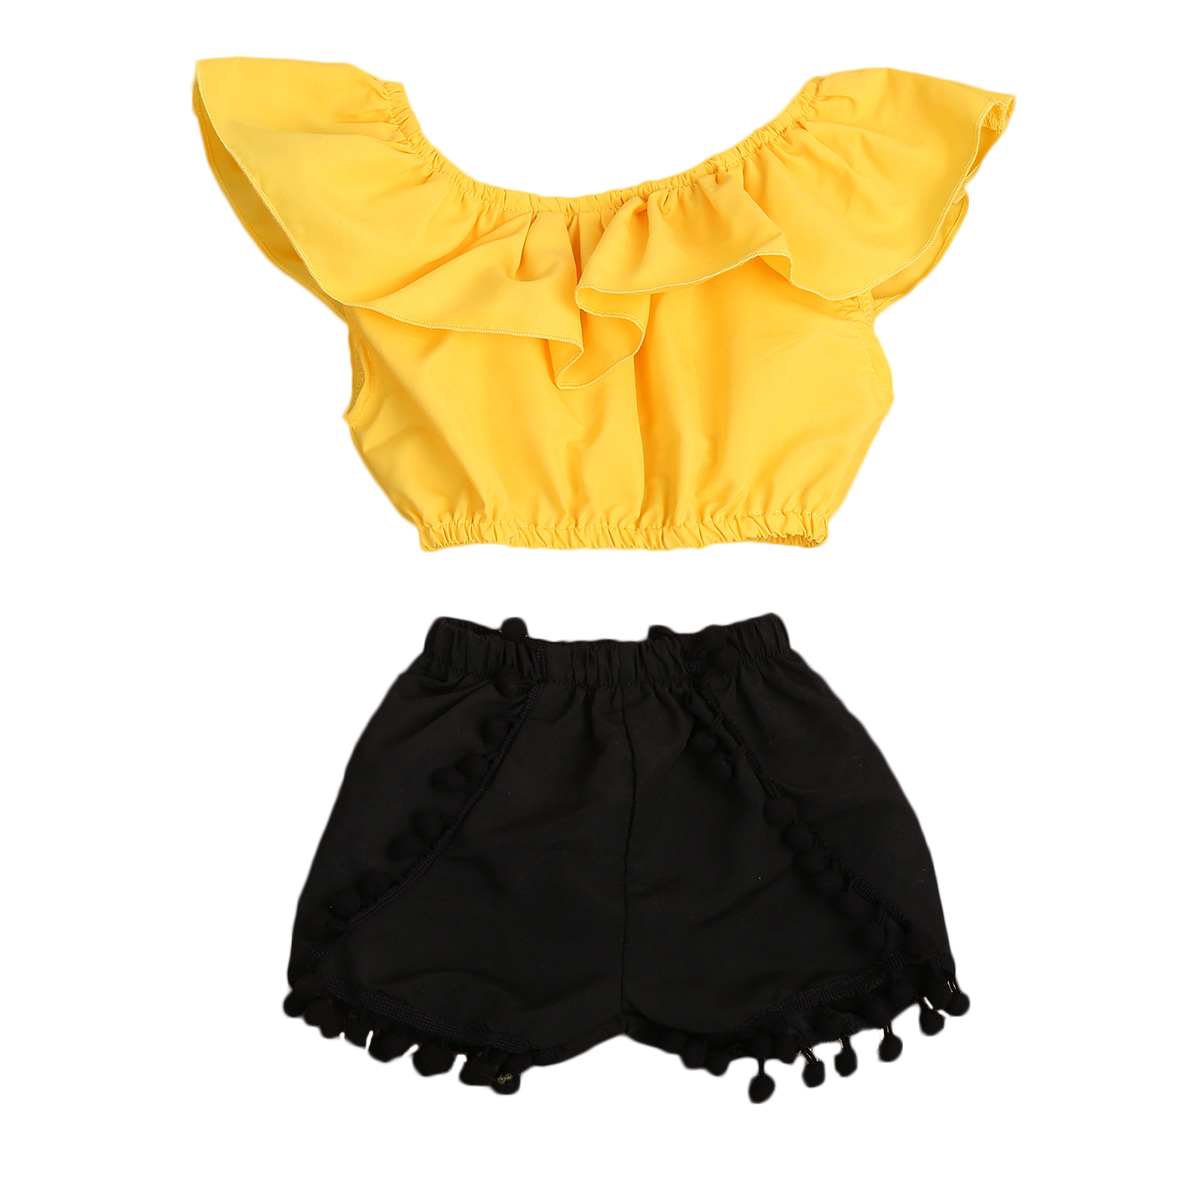 2PCS Baby Kids Girl Clothes Ruffle Off Shoulder Sleeveless Top Tank+Shorts Pants Outfit Girls Clothing Set